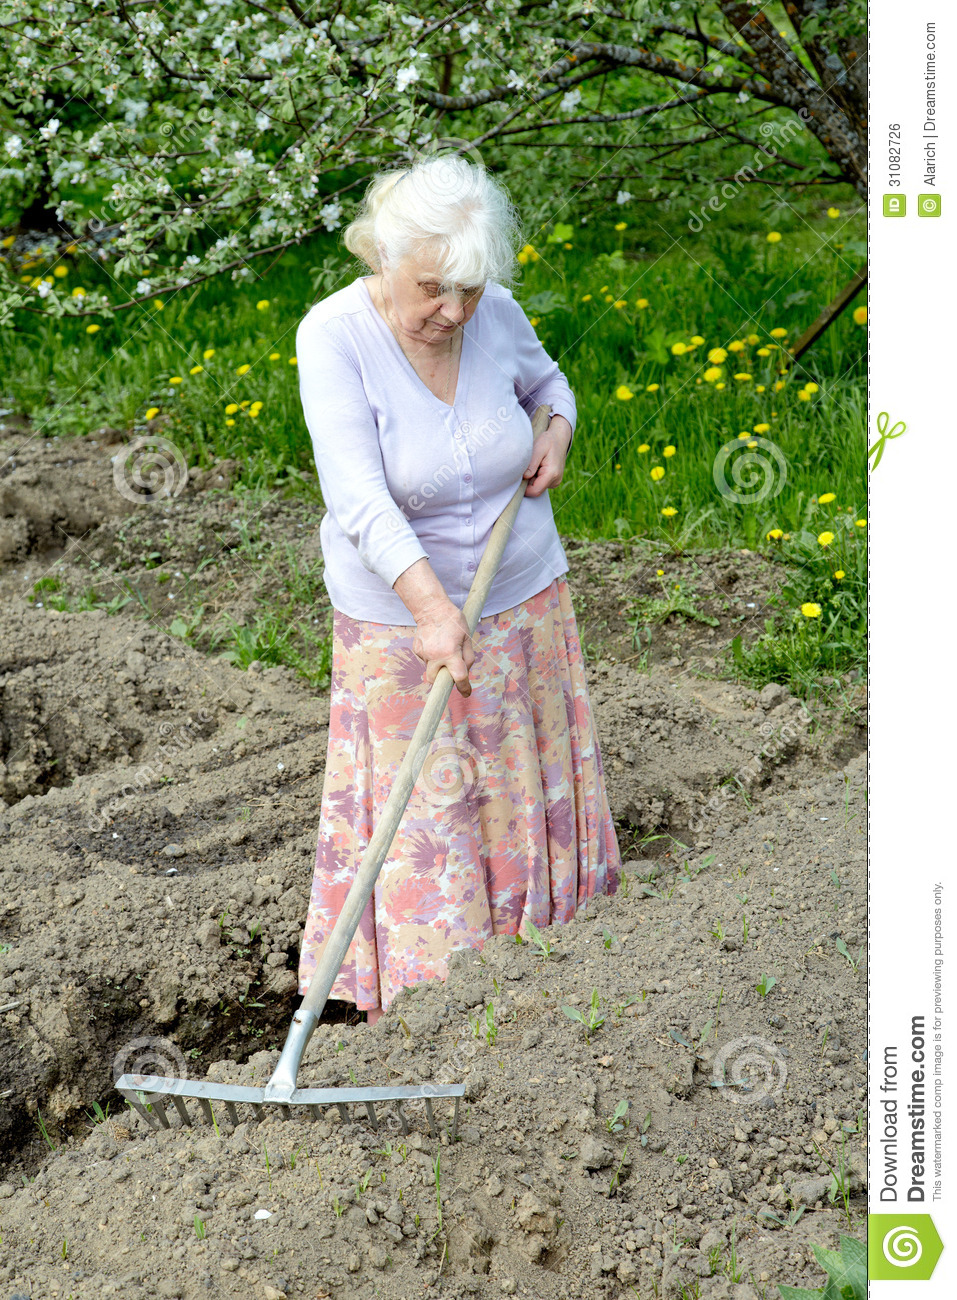 The Old Woman Works In A Blossoming Garden Royalty Free